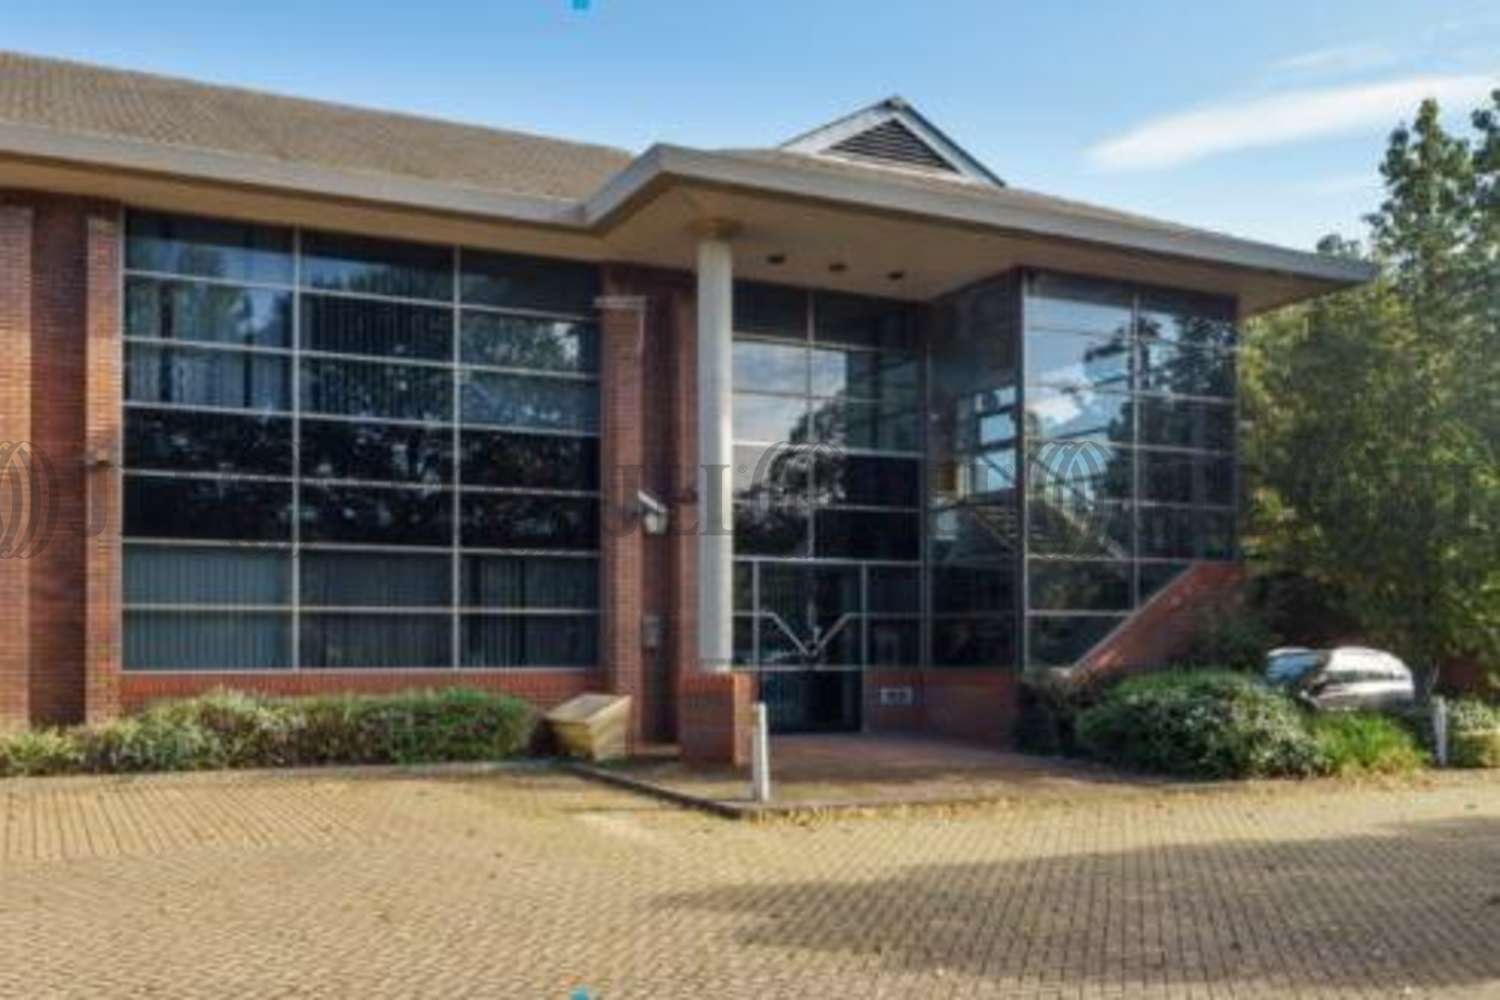 Industrial Slough, SL1 4QT - 225 Berwick Avenue - 1